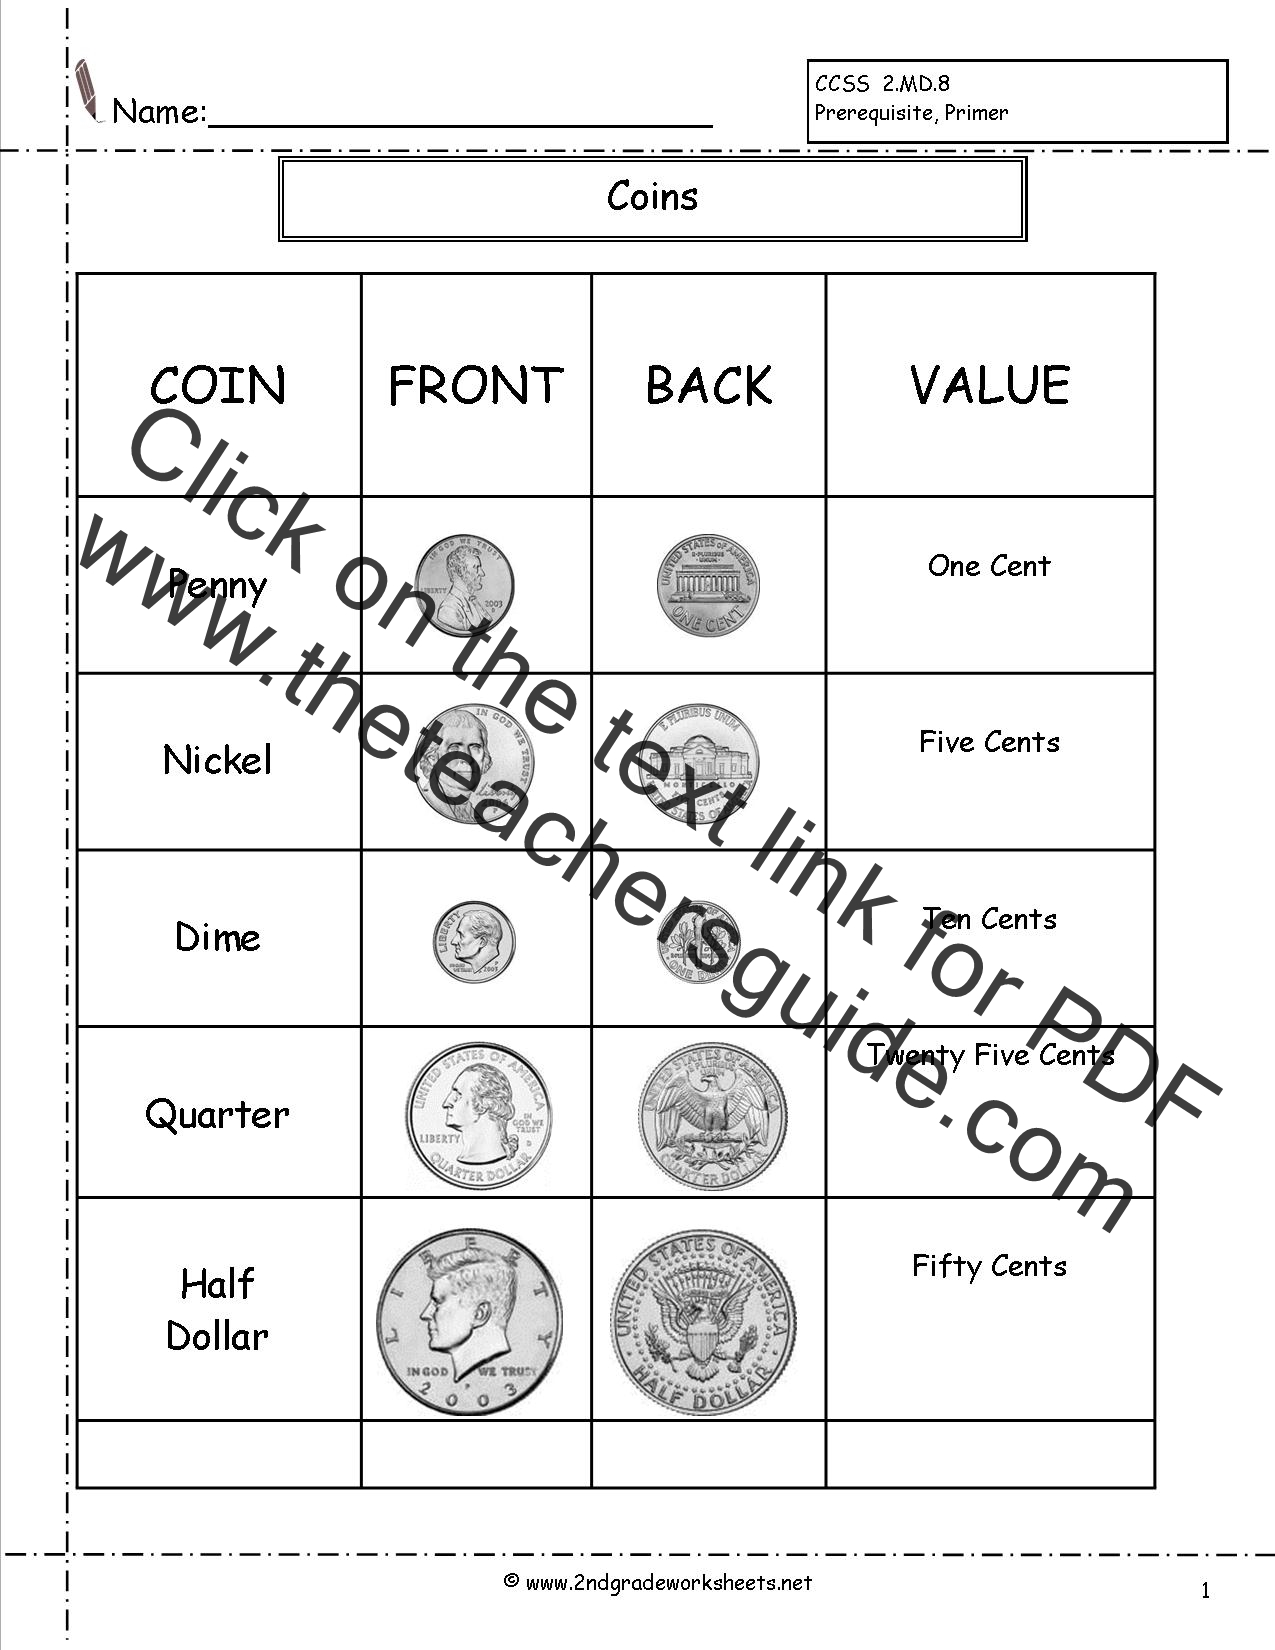 Ccss 2 Md 8 Worksheets Counting Coins Worksheets Money Wordproblems Worksheets